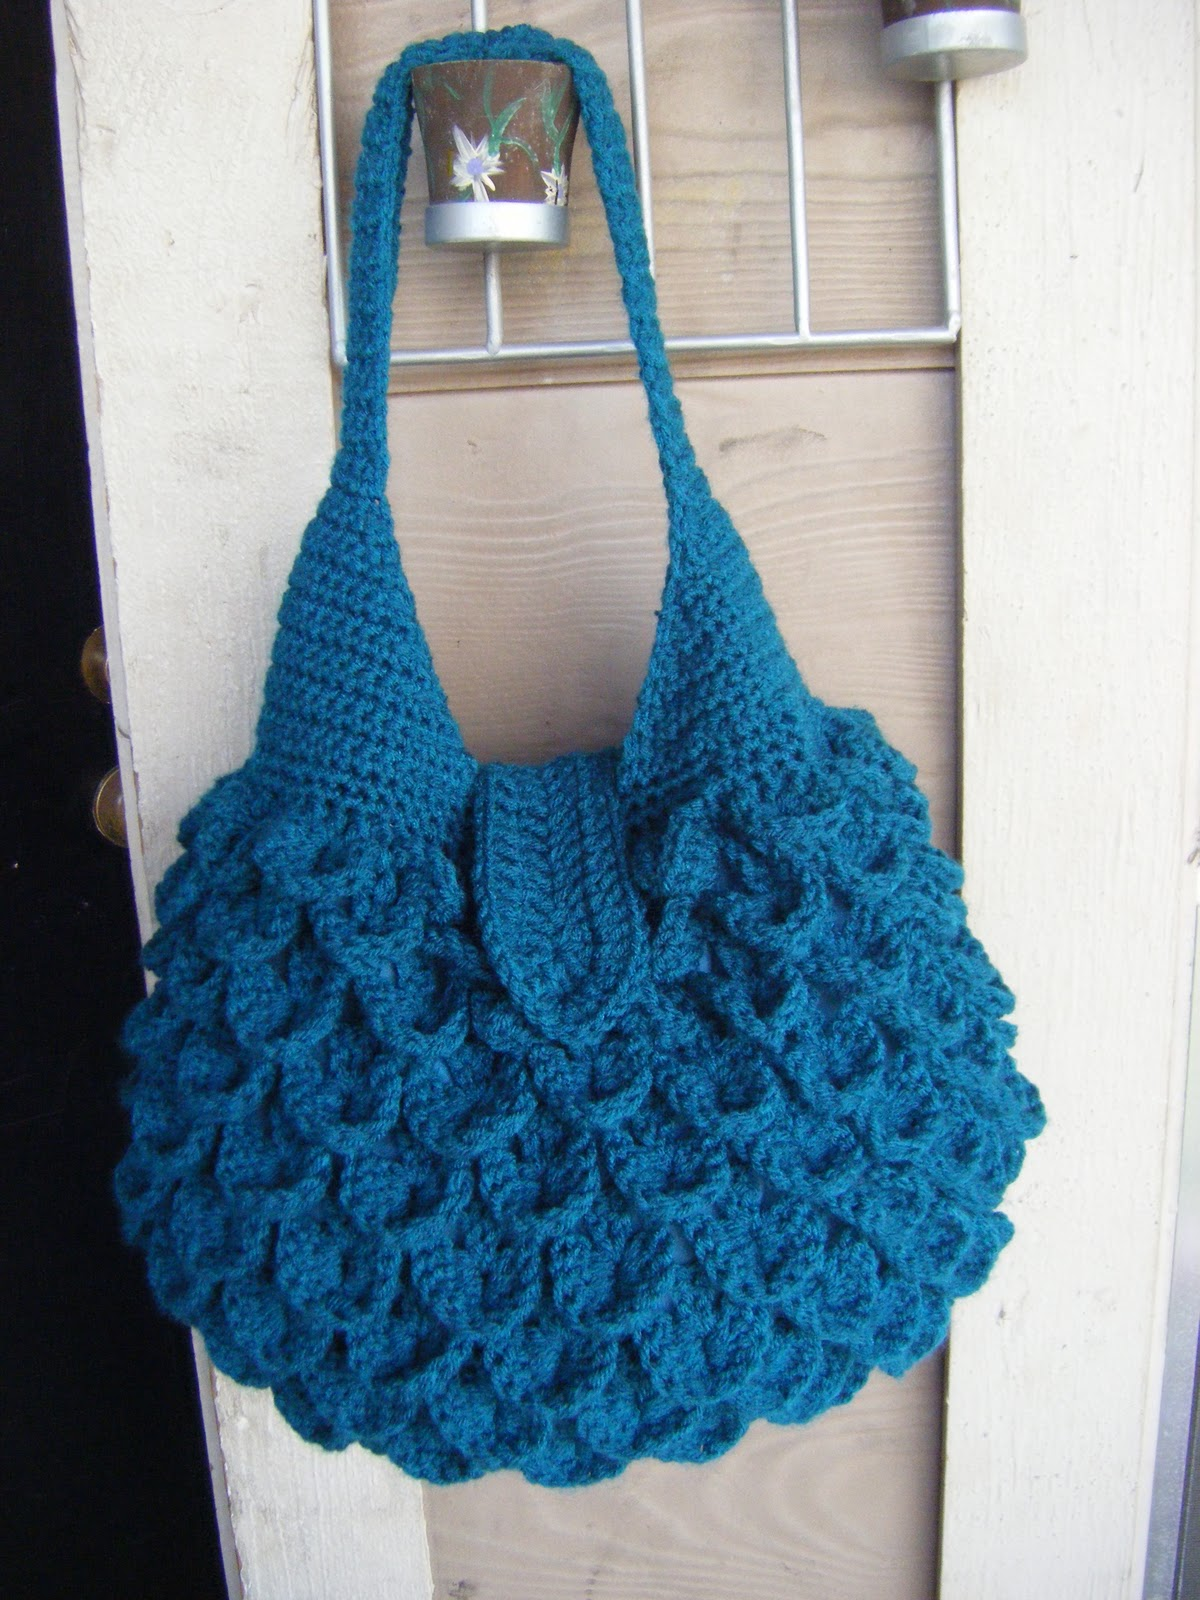 How To Crochet A Bag : Best Patterns: Crocodile Crochet Bag PATTERN